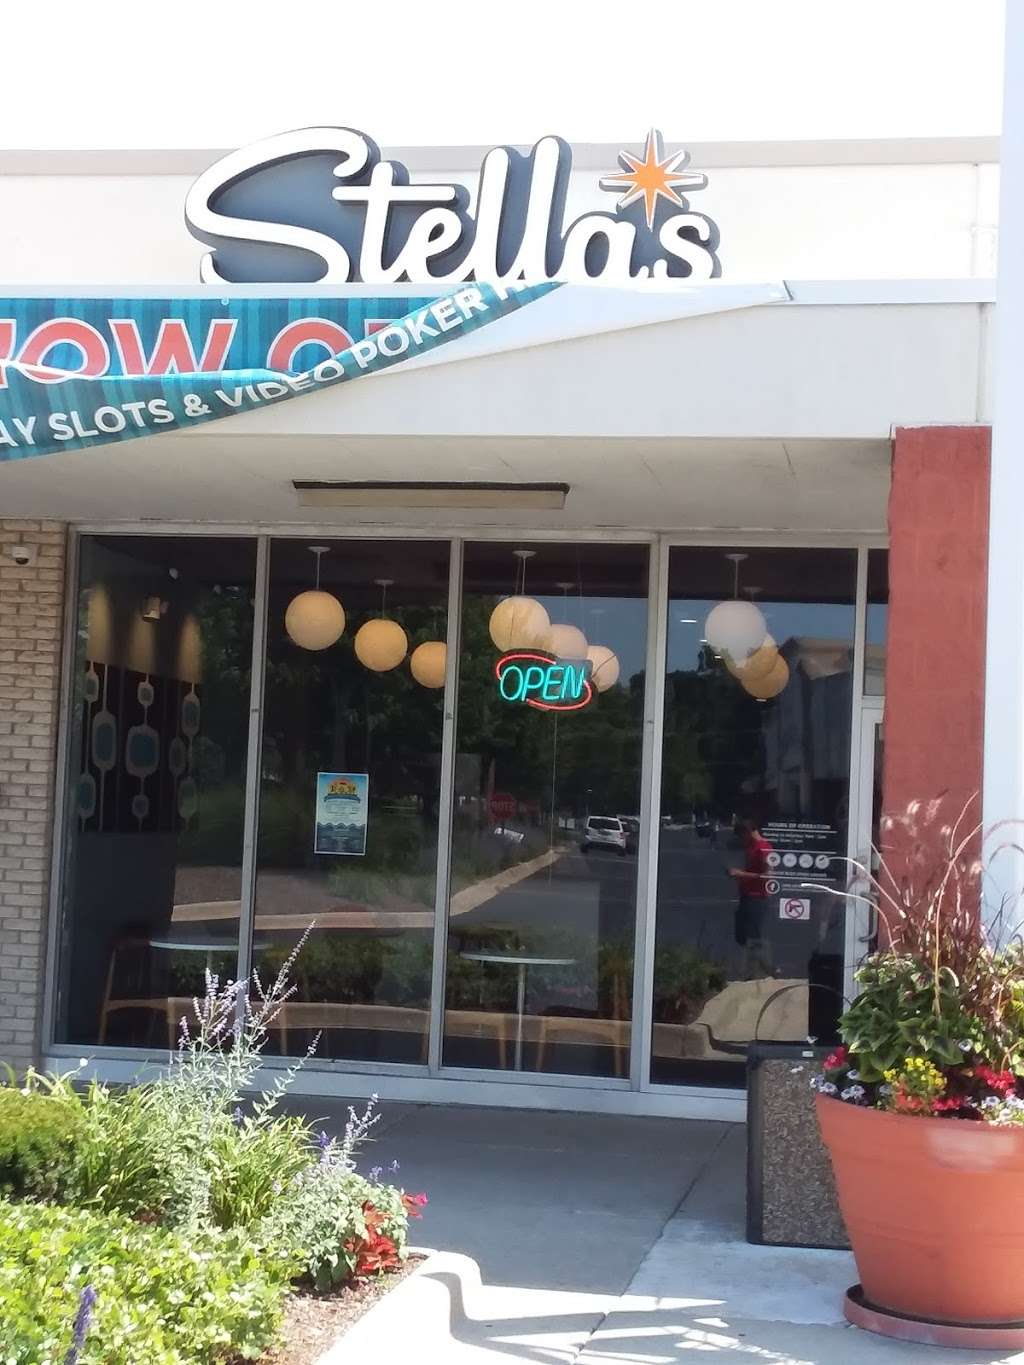 Stellas Place - cafe  | Photo 1 of 2 | Address: 3101 N Thatcher Road, River Grove, IL 60171, USA | Phone: (847) 388-0895